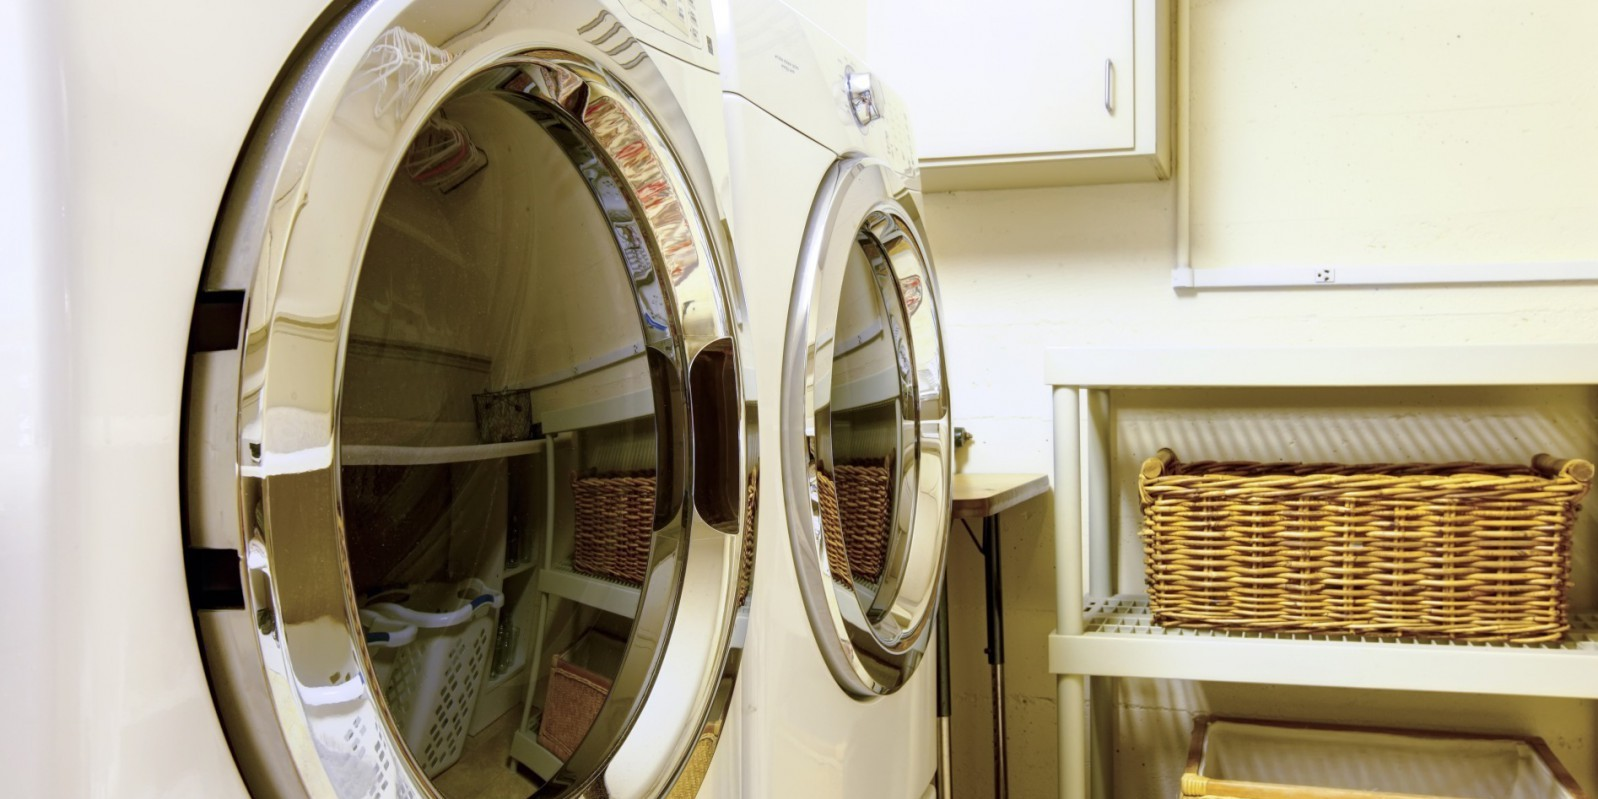 How To Maximize the Efficiency Of Your Clothes Dryer